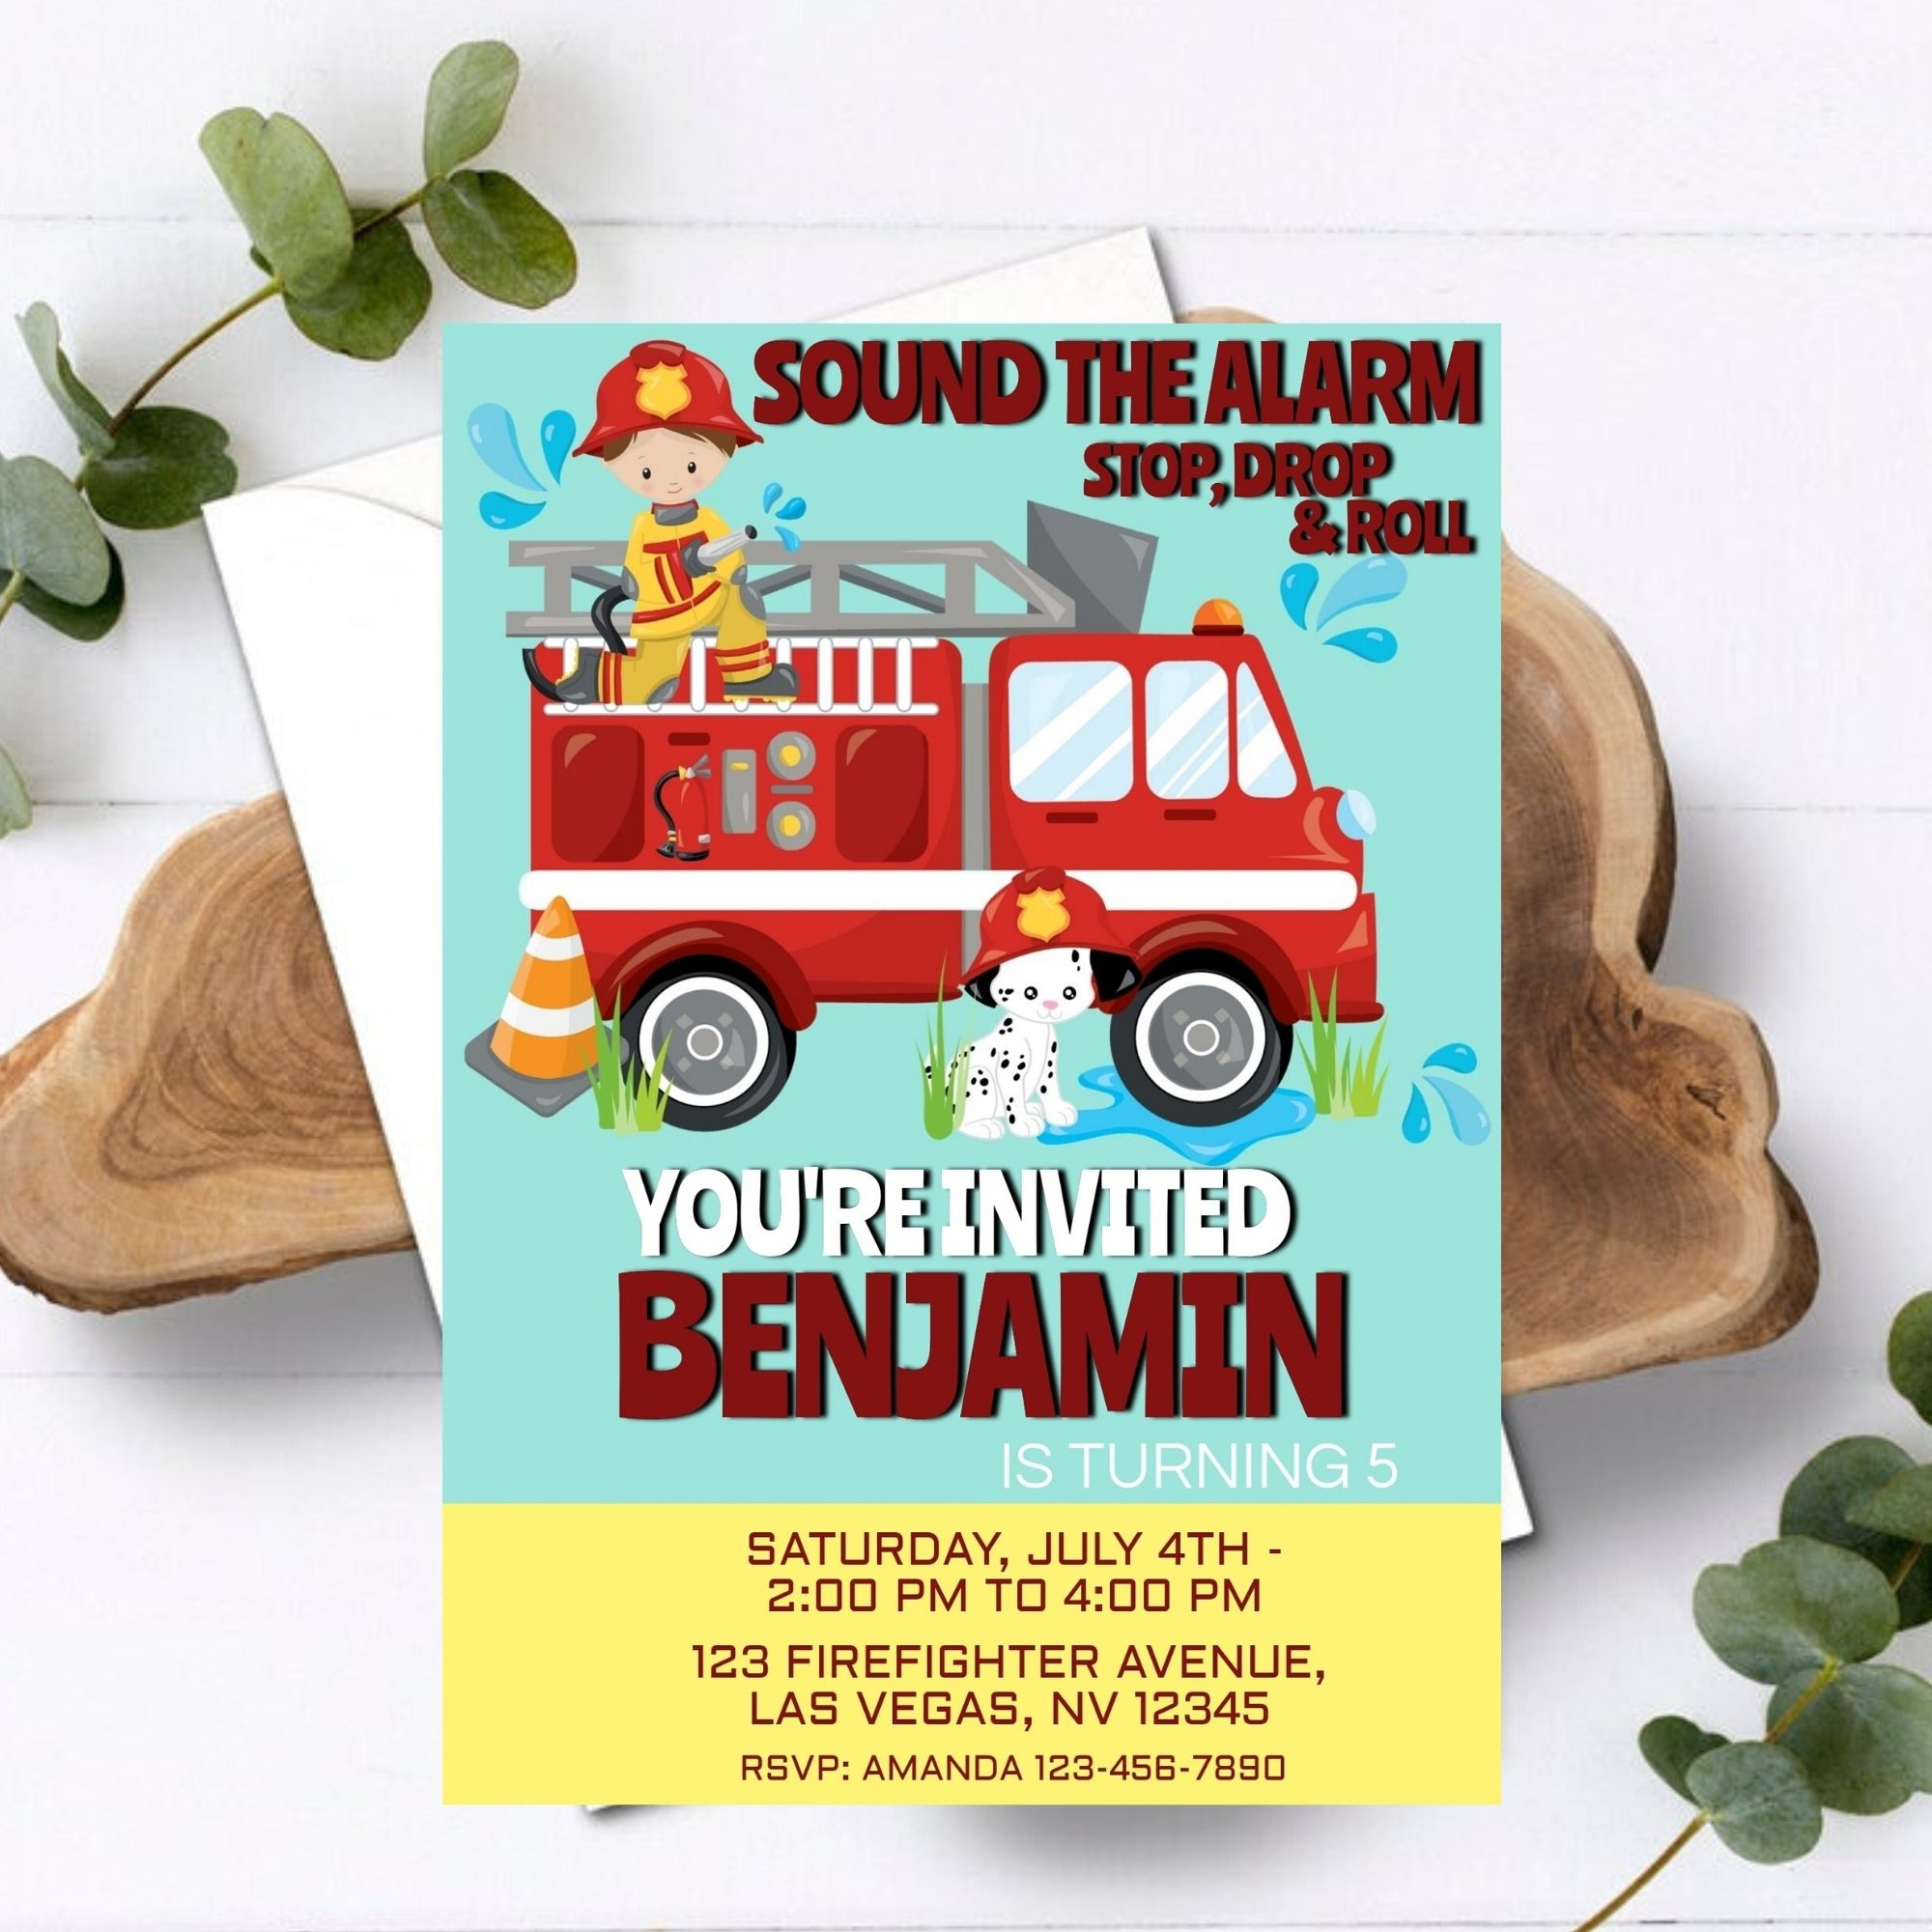 Fire and firefighter department icons, fireman helmet and axe badges. Editable Firefighter Party Birthday Invitation Partylovin